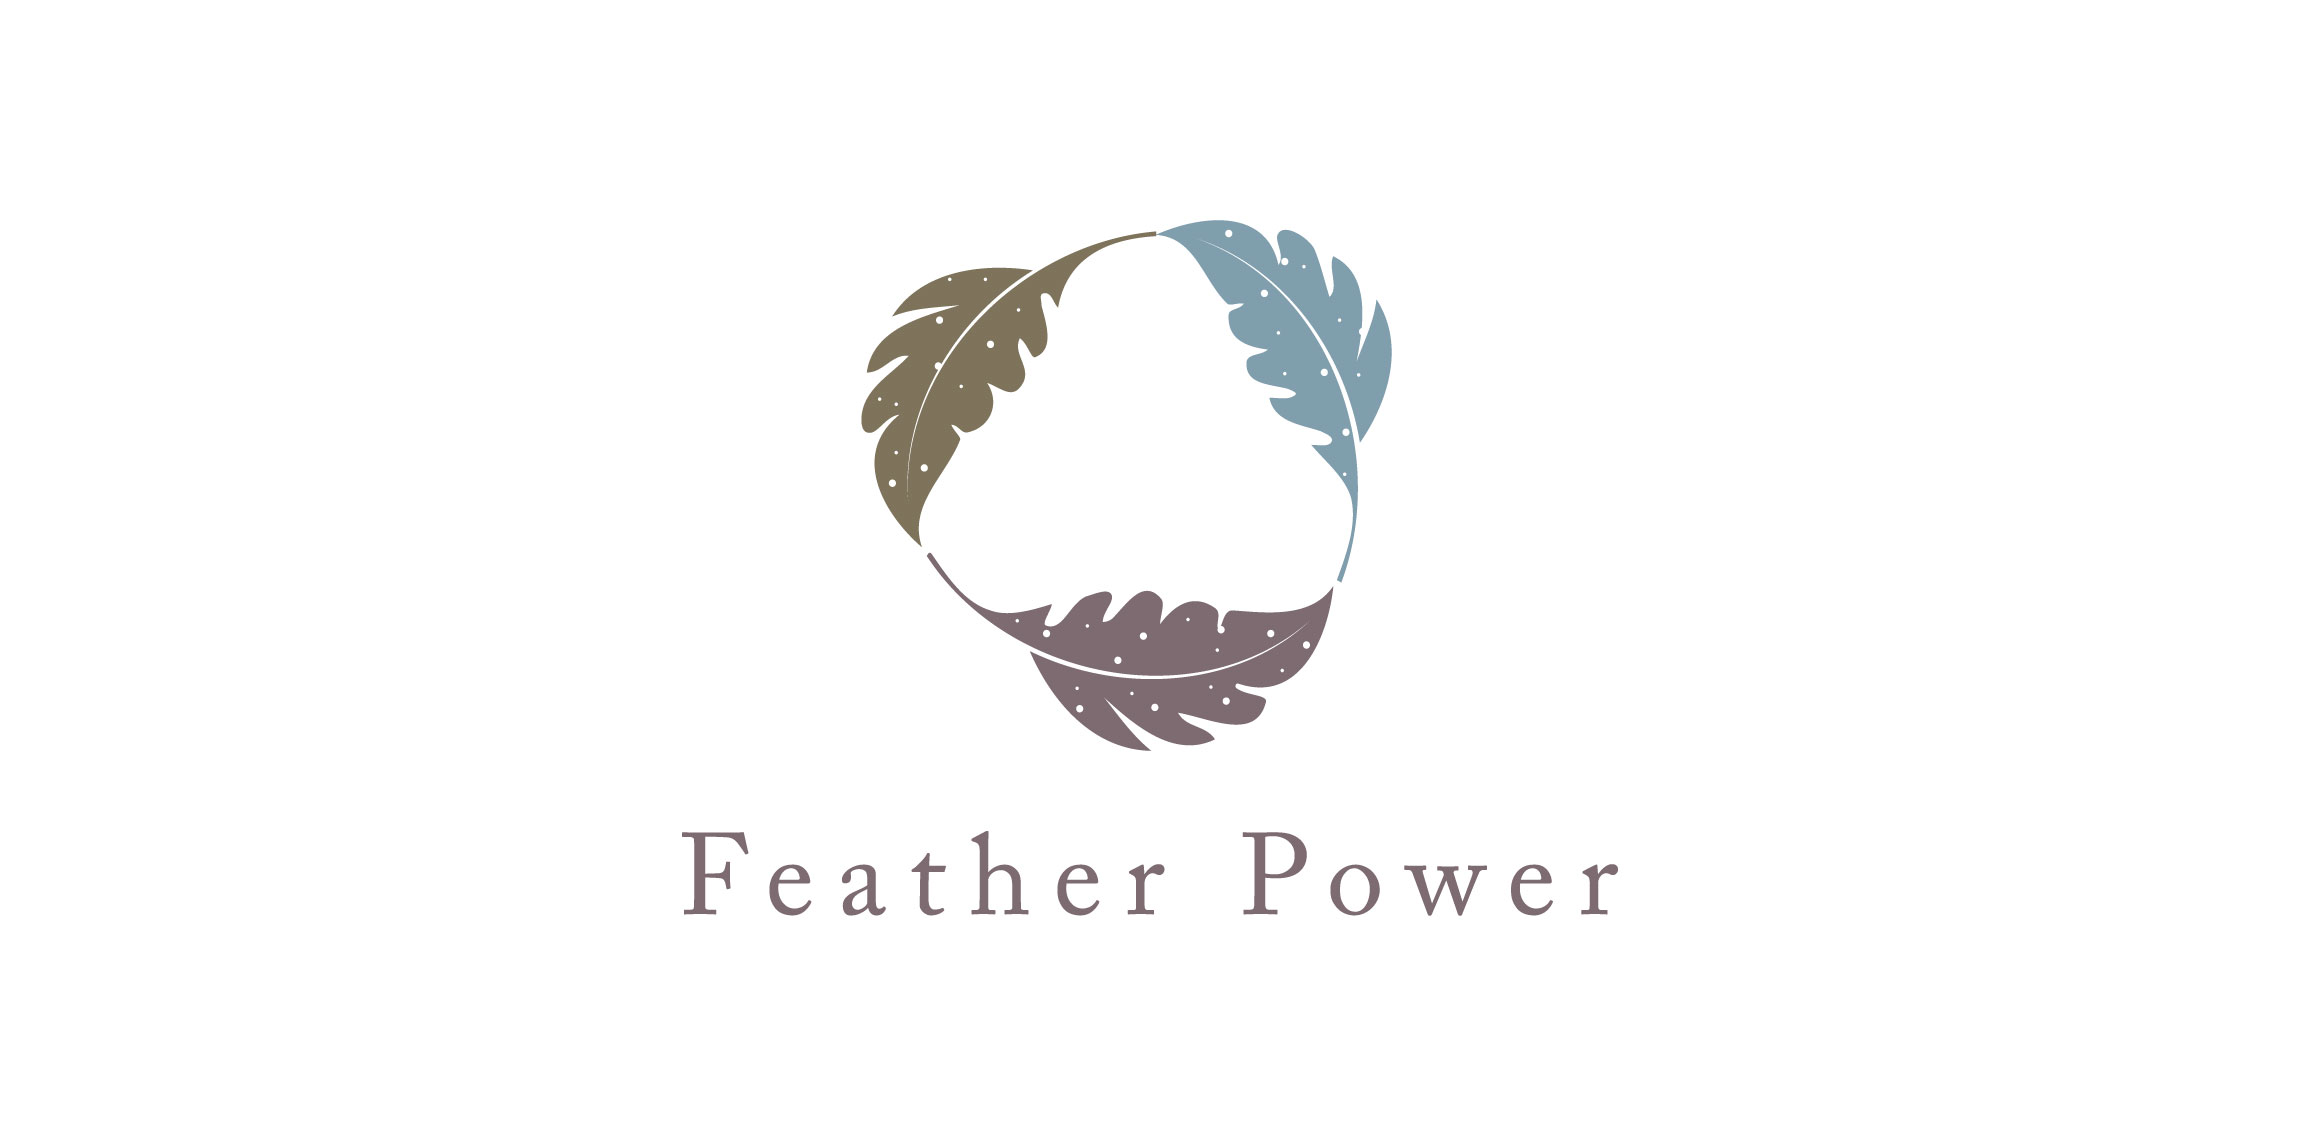 Feather Power